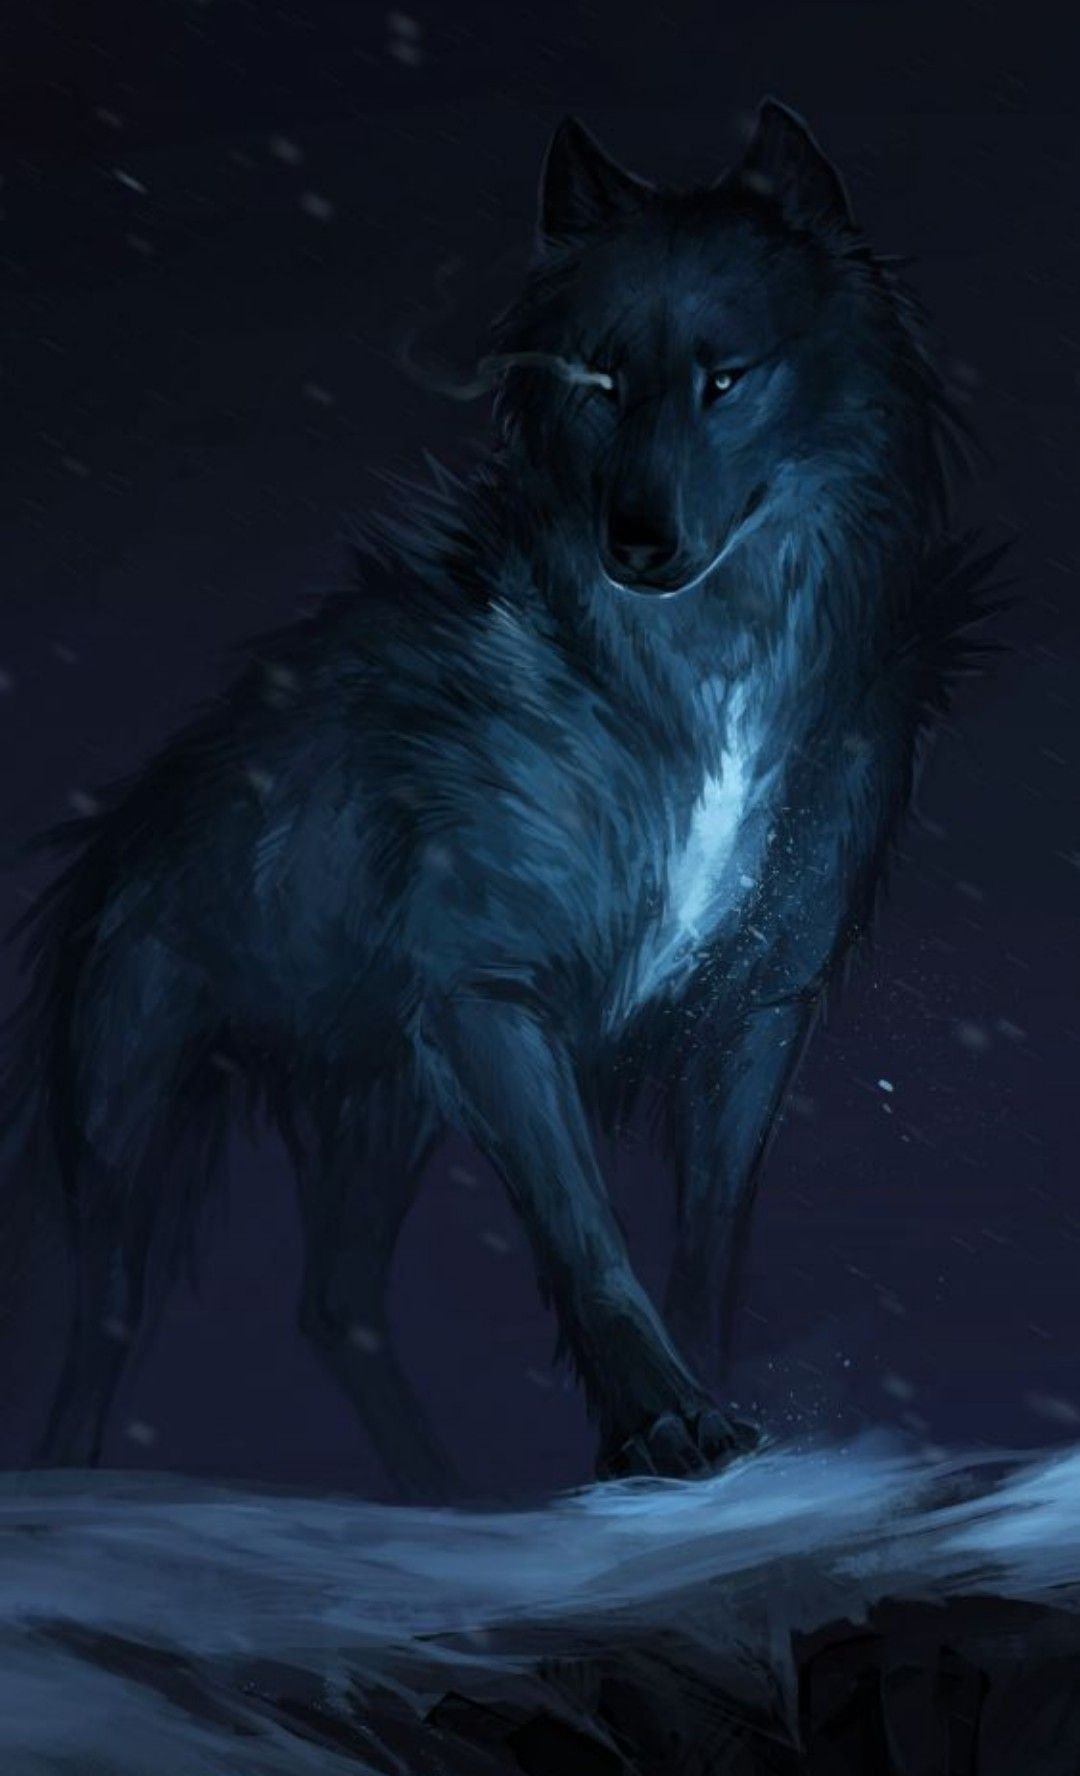 Pin by mehrdad on My saves in 2020 Wolf wallpaper